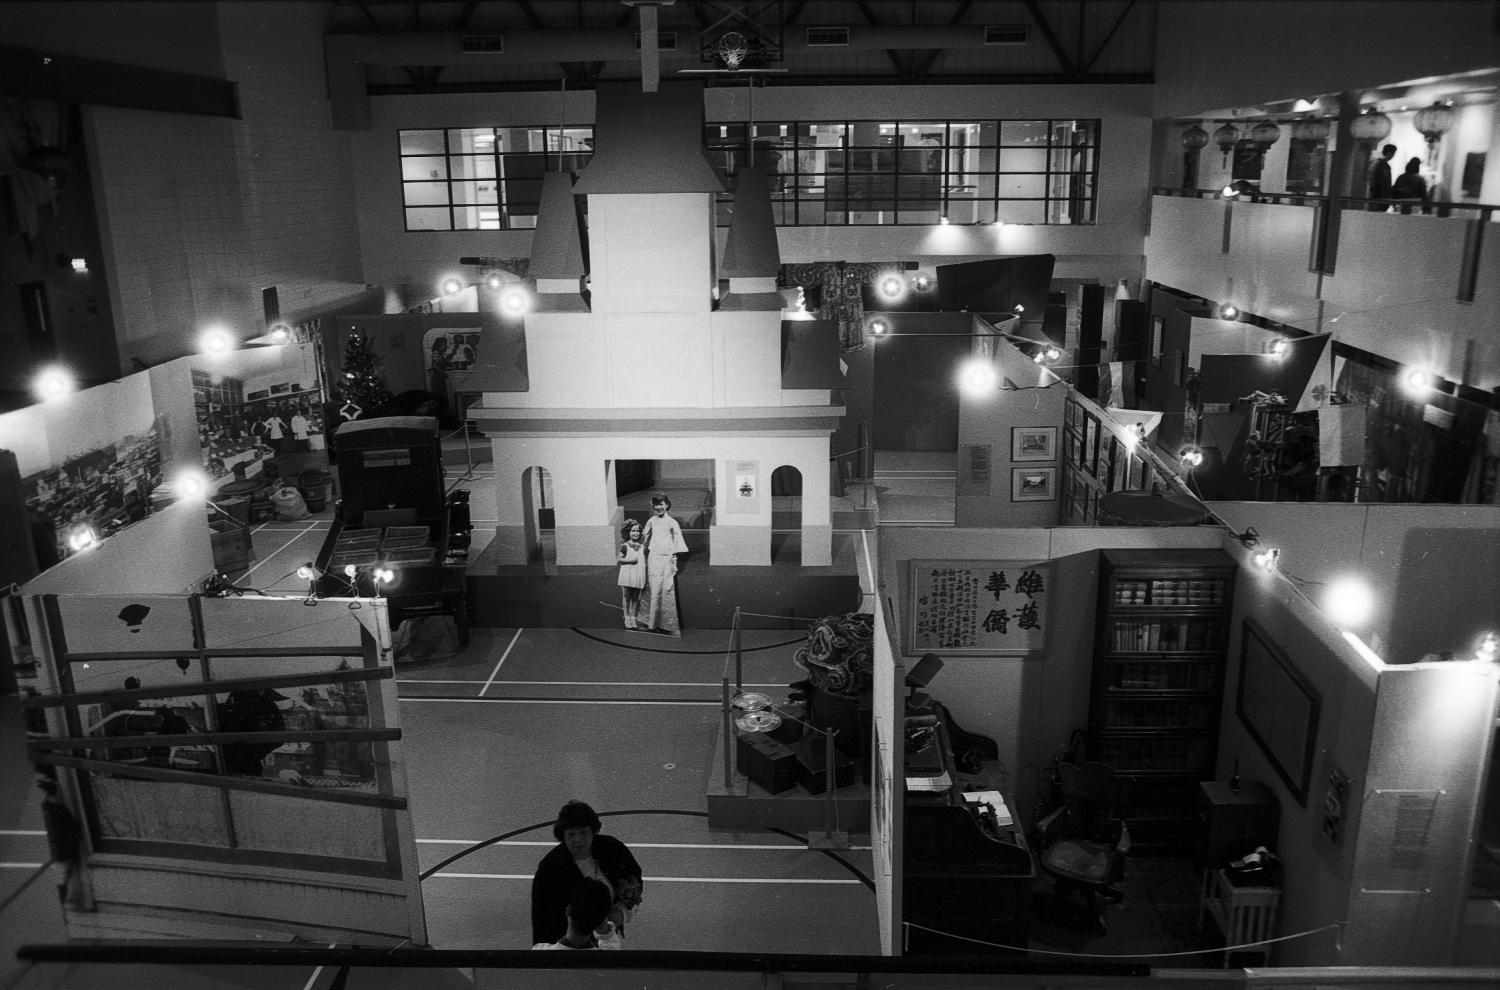 The Saltwater City exhibit viewed from the second floor of the Chinese Cultural Centre in 1986. Photographer:  Paul Yee. Reference code AM1523-S6-F28-: 2008-010.1567.